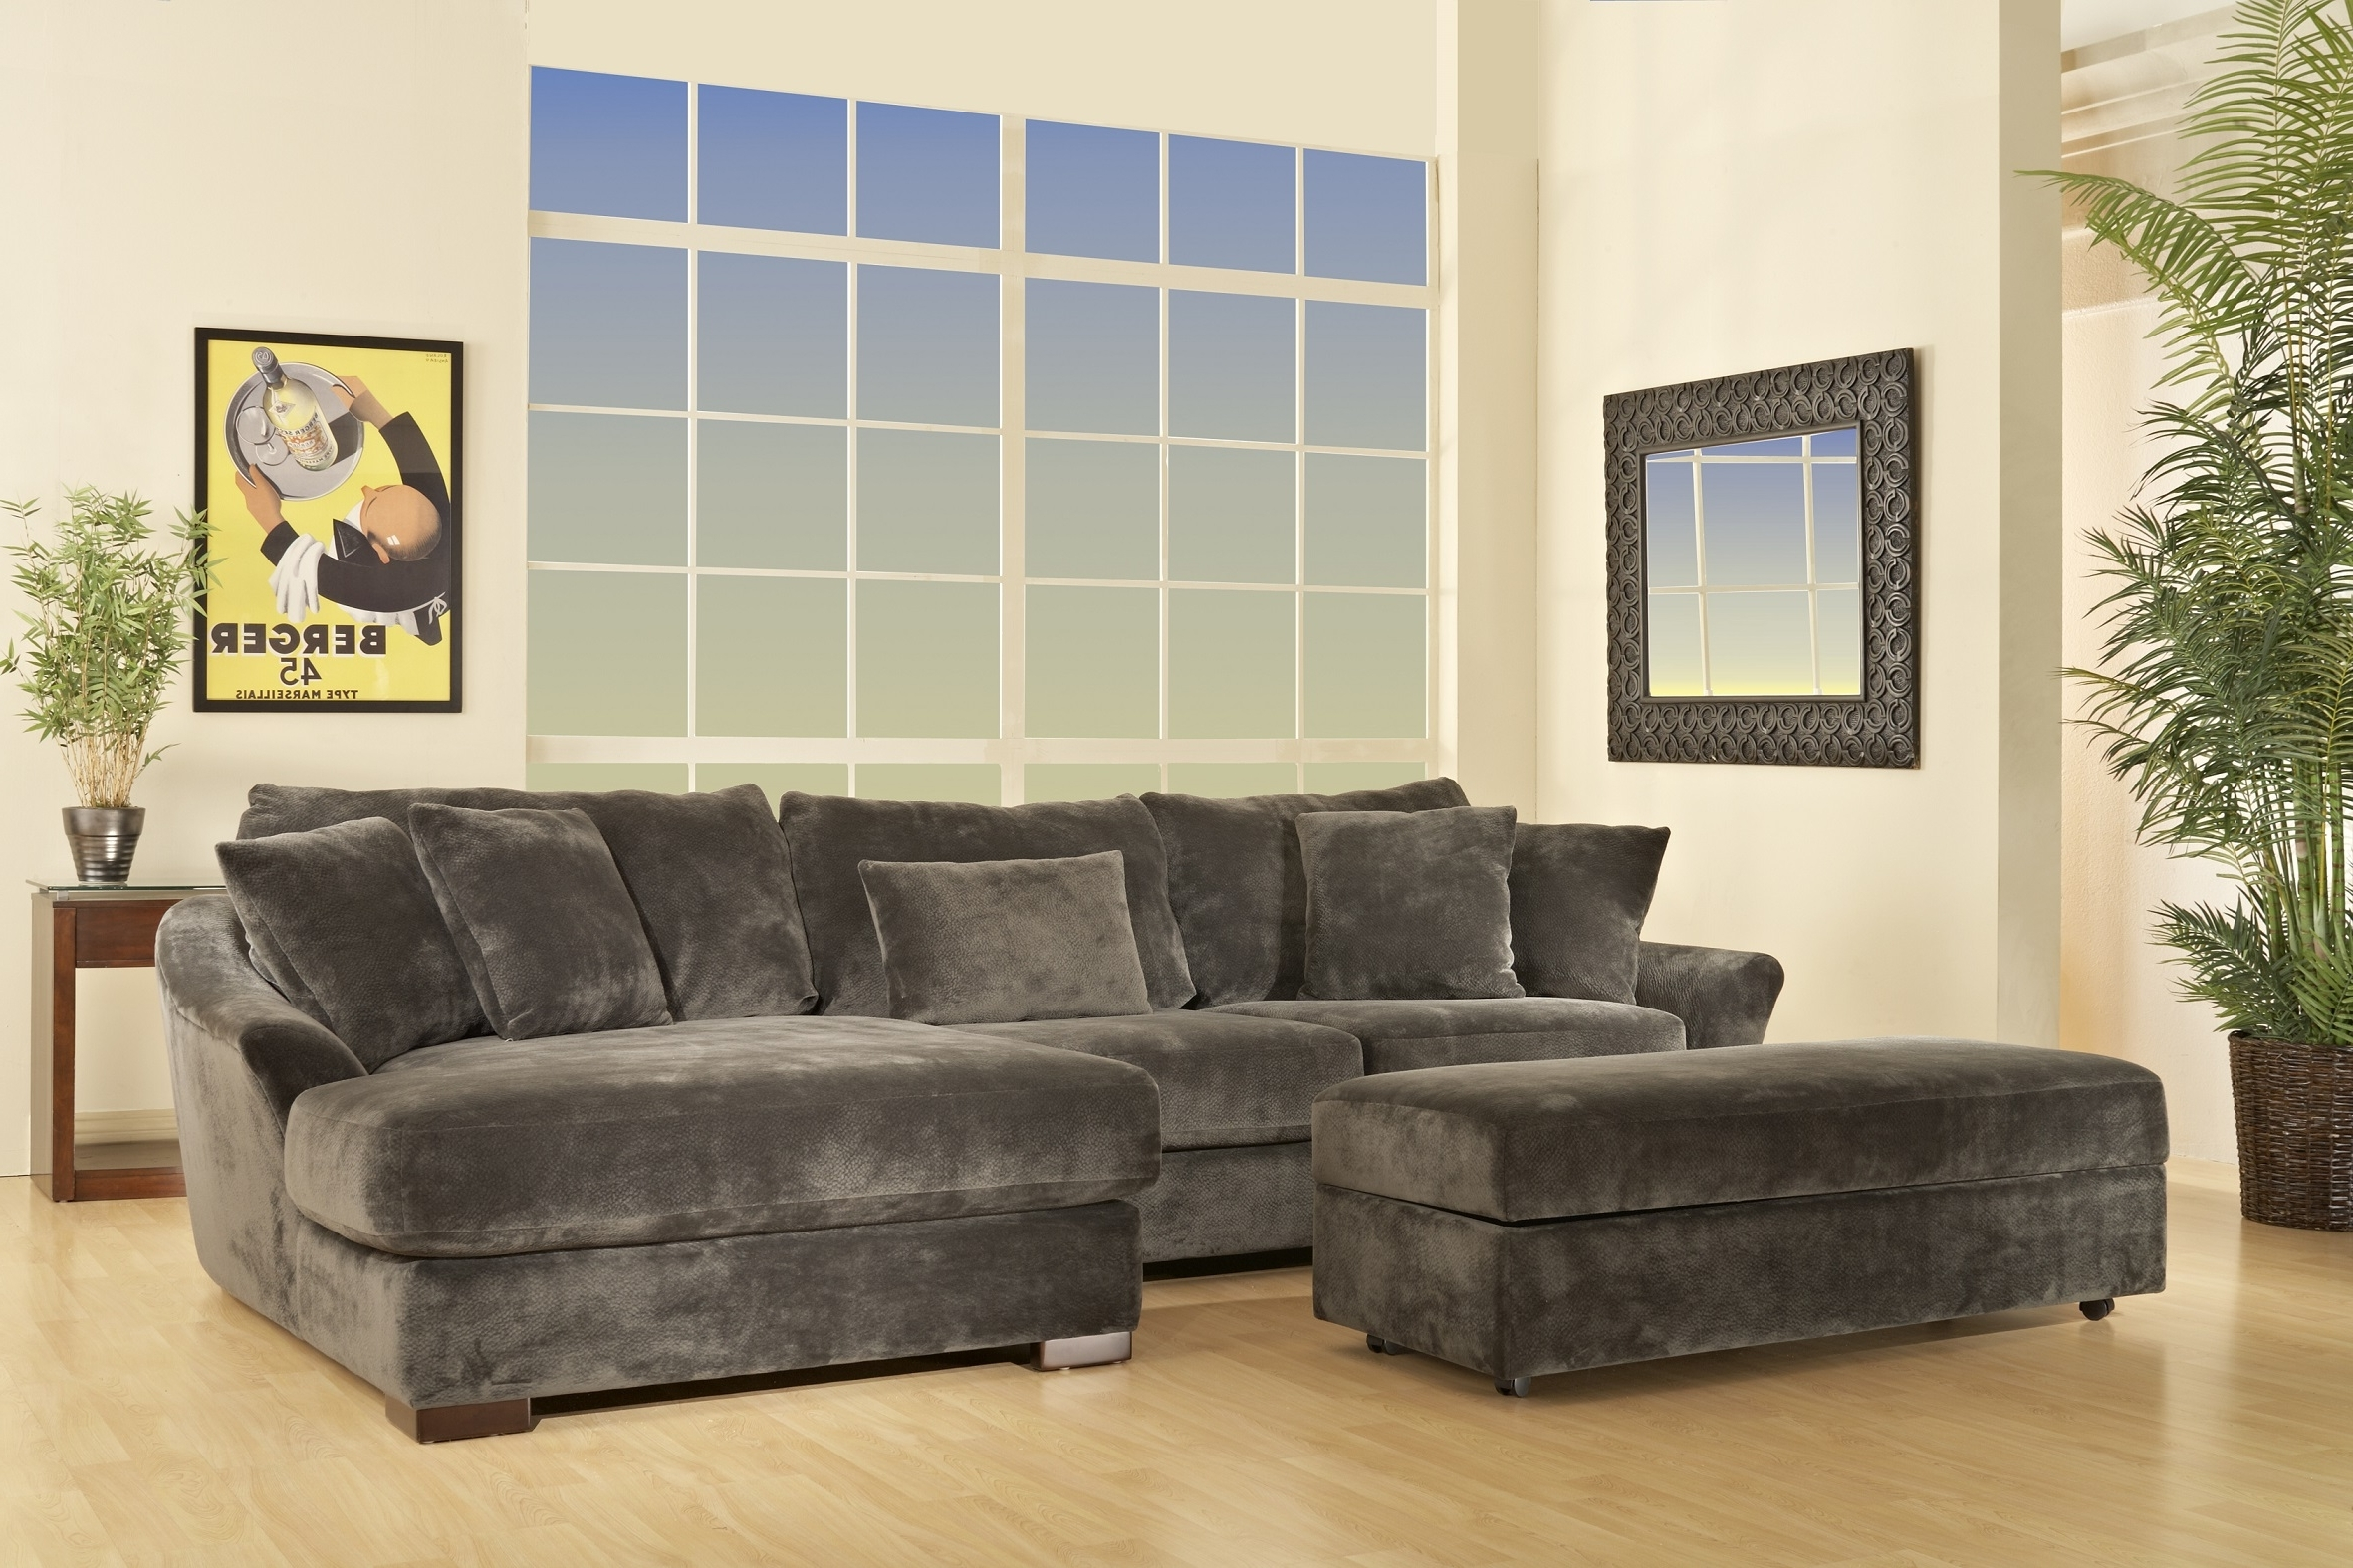 Current Sectional Sofa Design: Free Picture Sectional Sofas Atlanta Sofa With Regard To Sectional Sofas At Atlanta (View 7 of 20)